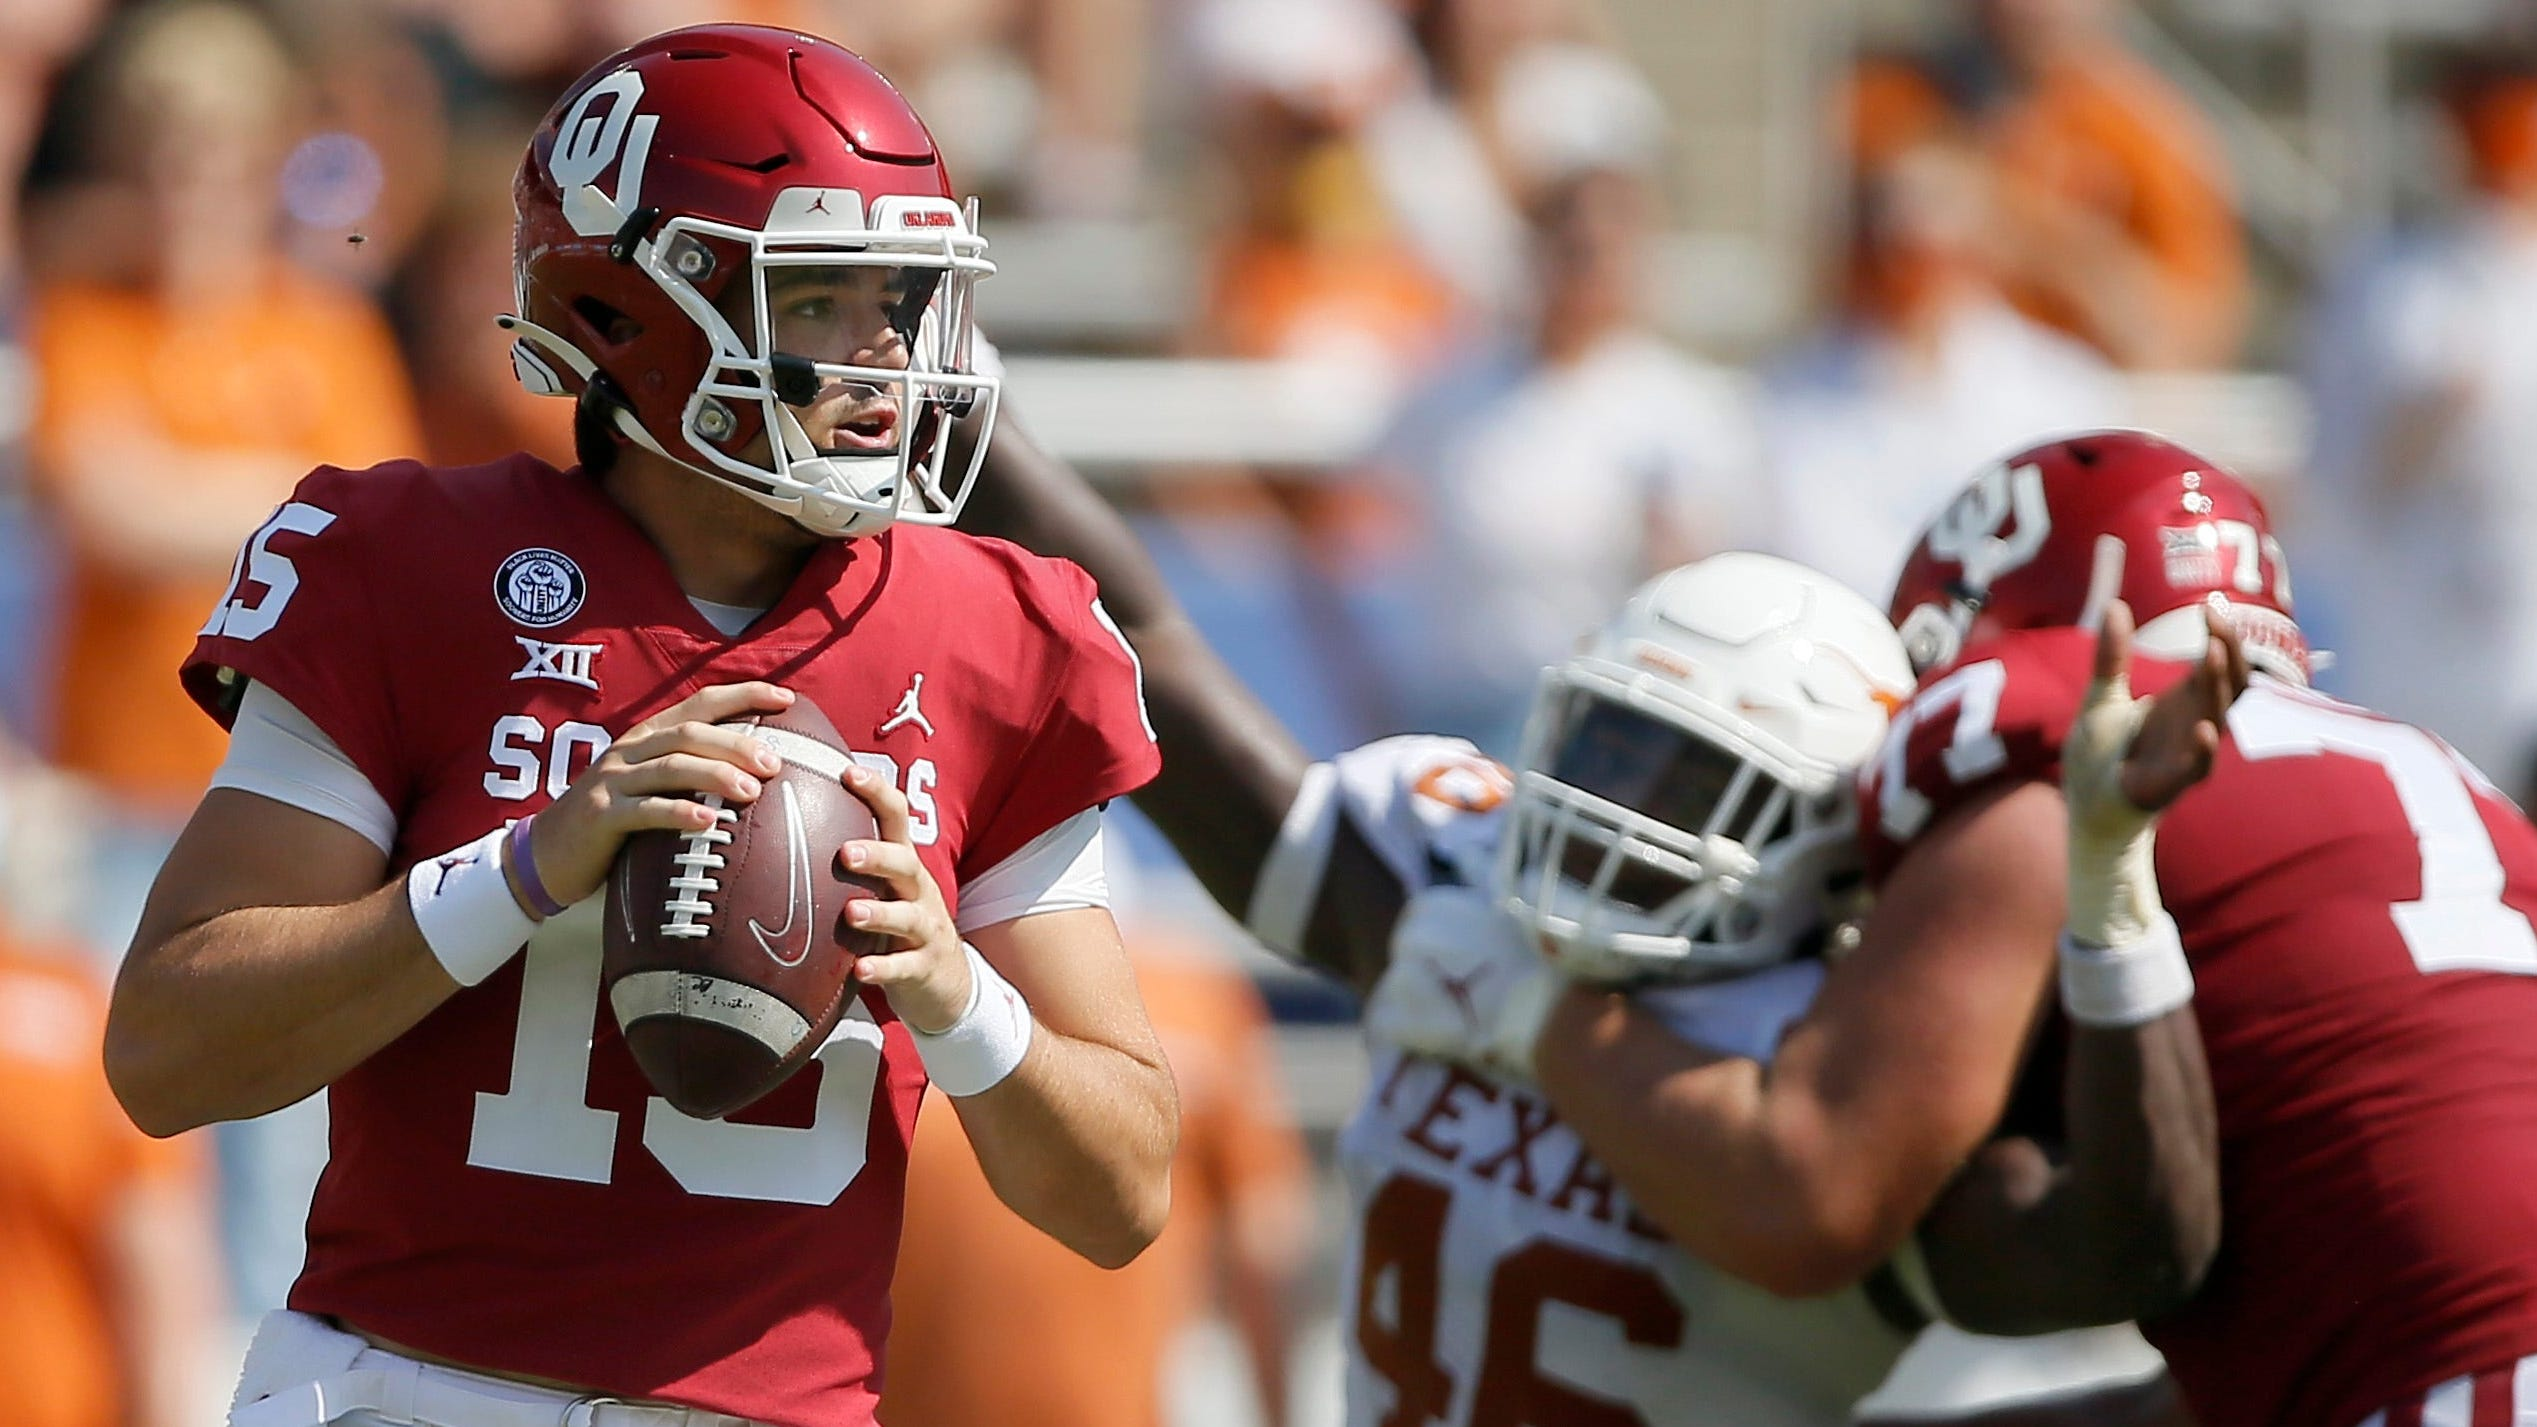 Analysis: Sure, Texas and Oklahoma could move to SEC. But there's a lot of roadblocks to sort first.